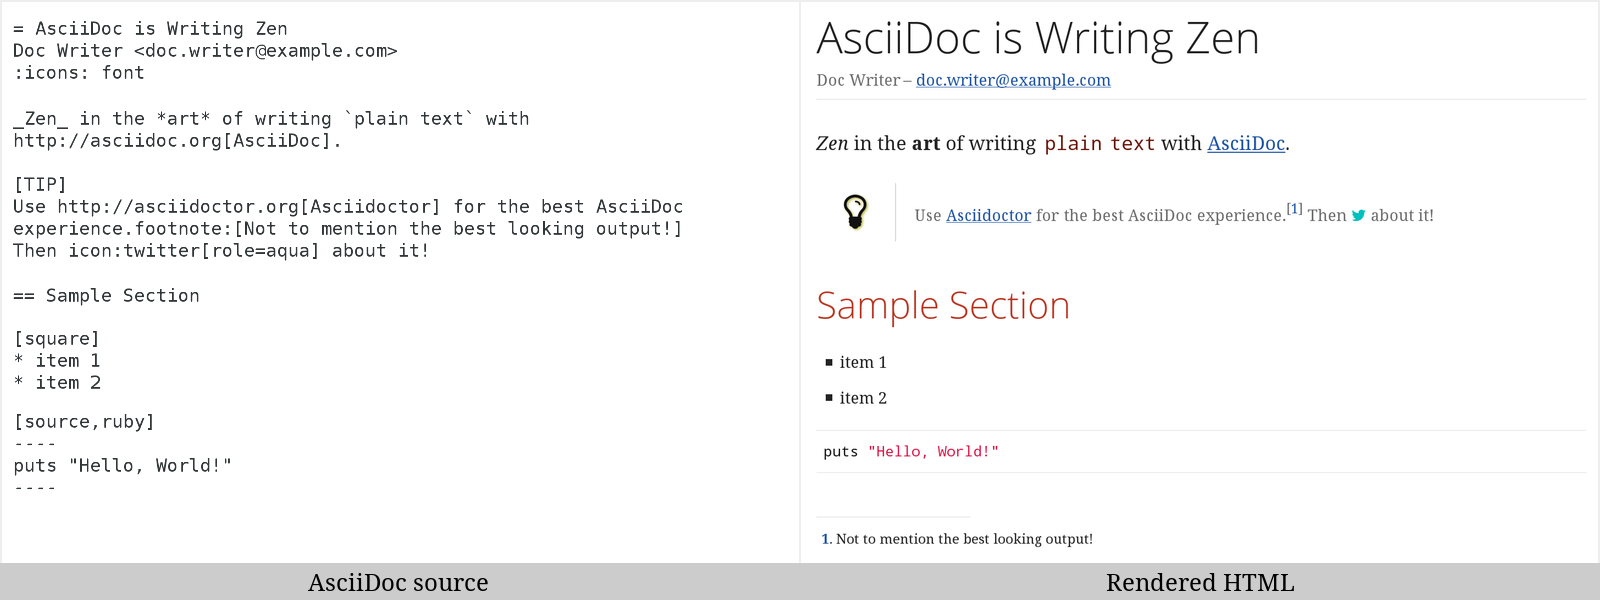 Preview of AsciiDoc source and corresponding rendered HTML